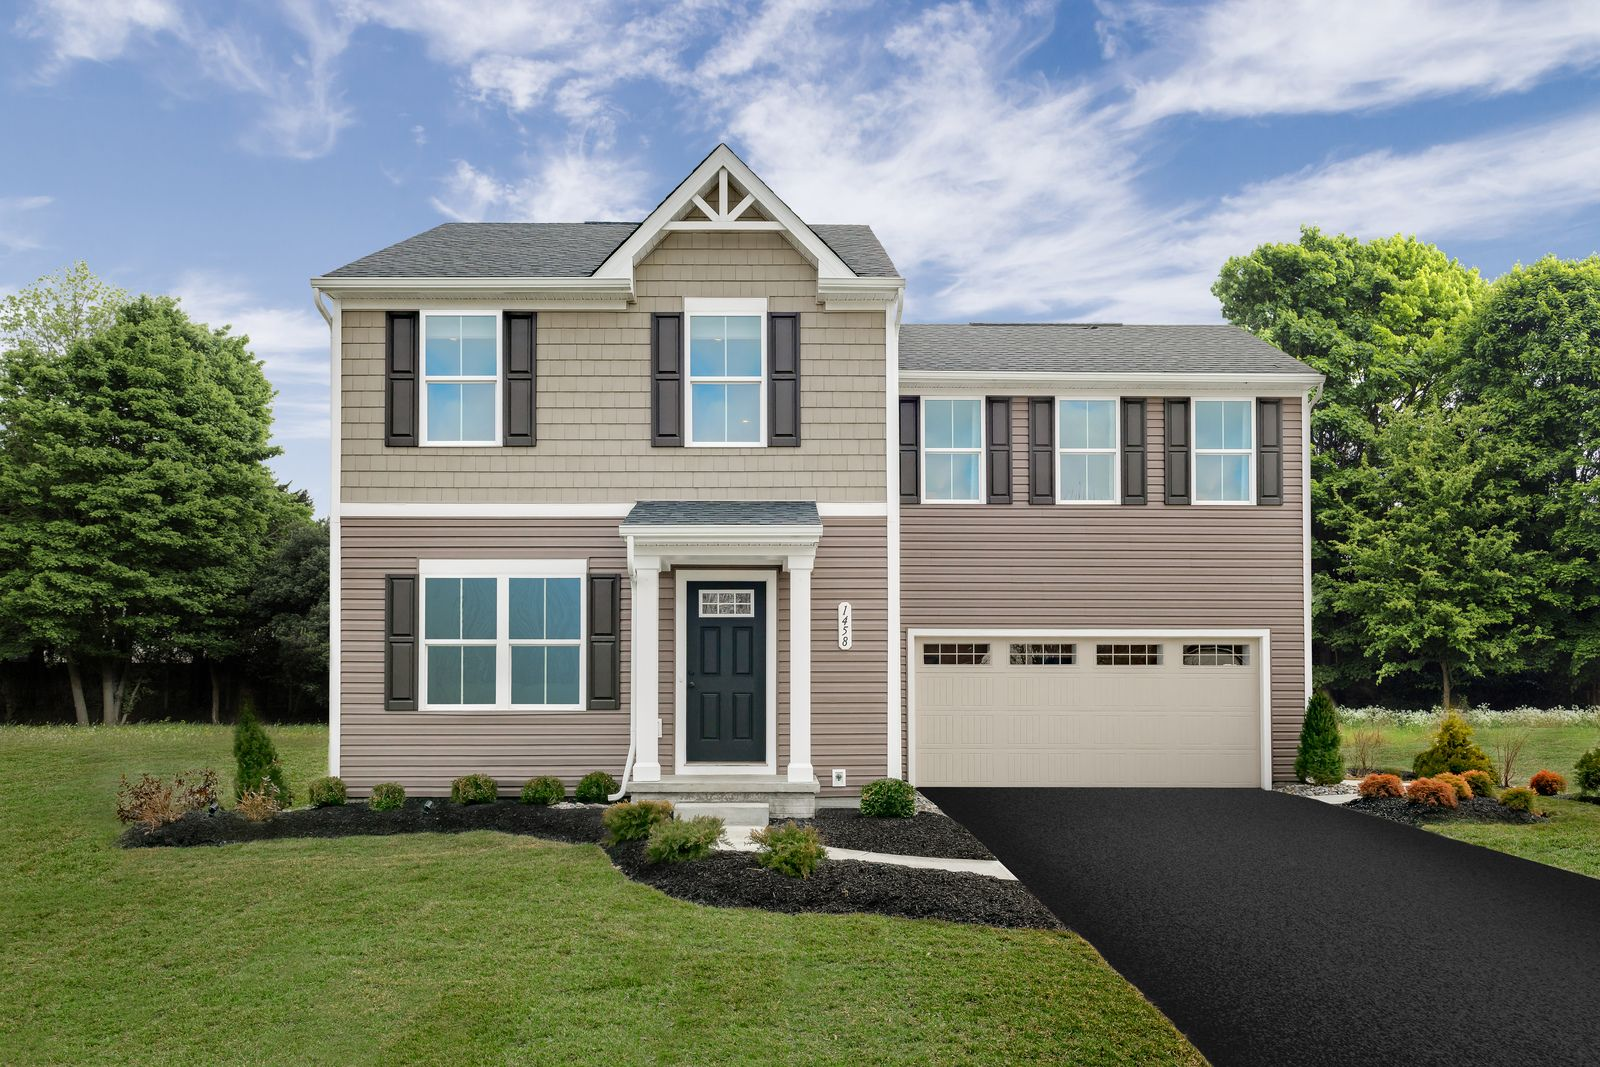 Welcome to Briar Hollow:The lowest priced new single-family homes in Amherst, just minutes from Niagara Falls Blvd. and Rt. 290.Schedule your appointment today!